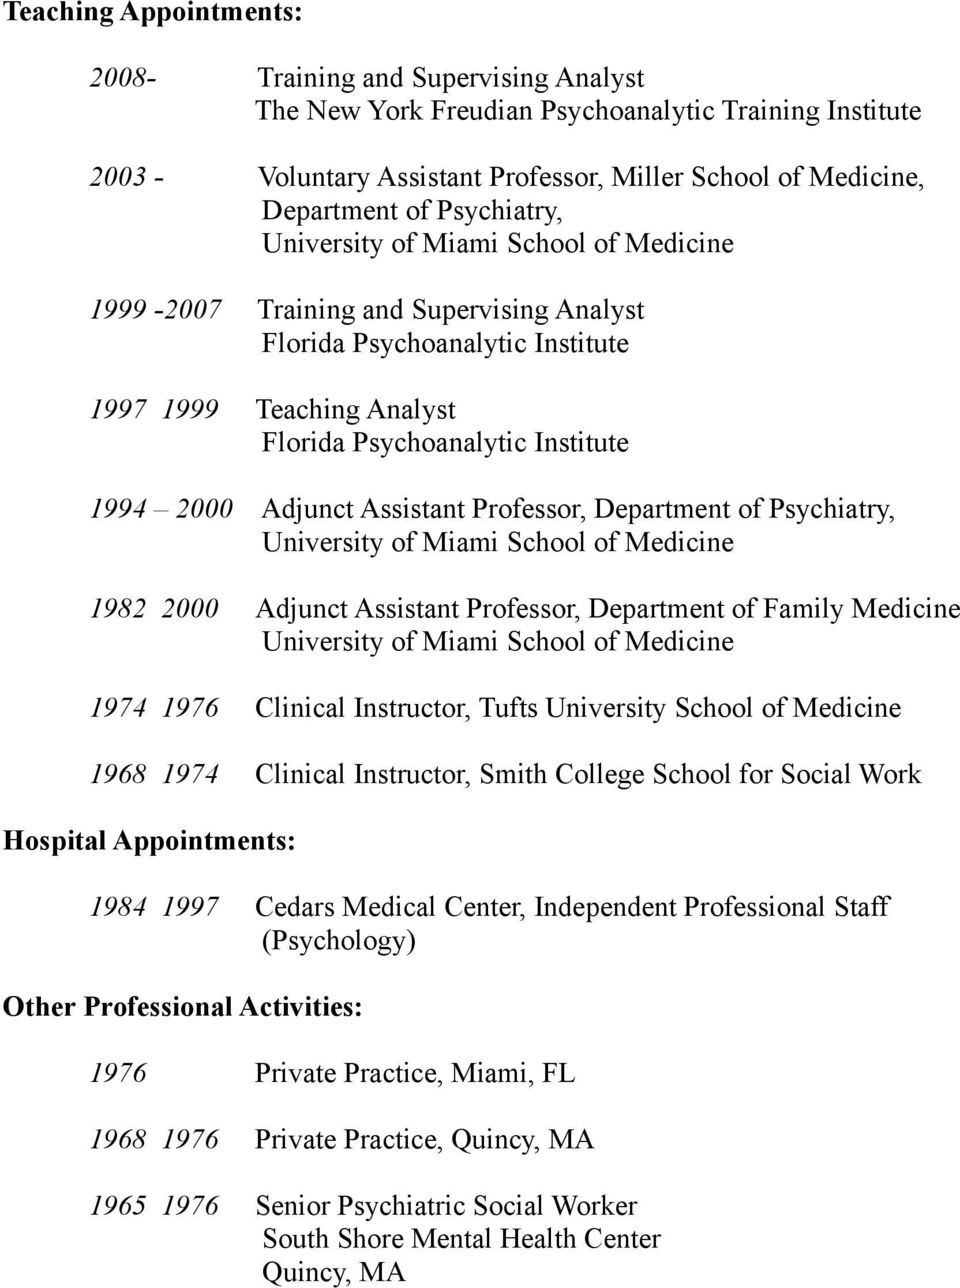 of Psychiatry, 1982 2000 Adjunct Assistant Professor, Department of Family Medicine 1974 1976 Clinical Instructor, Tufts University School of Medicine 1968 1974 Clinical Instructor, Smith College